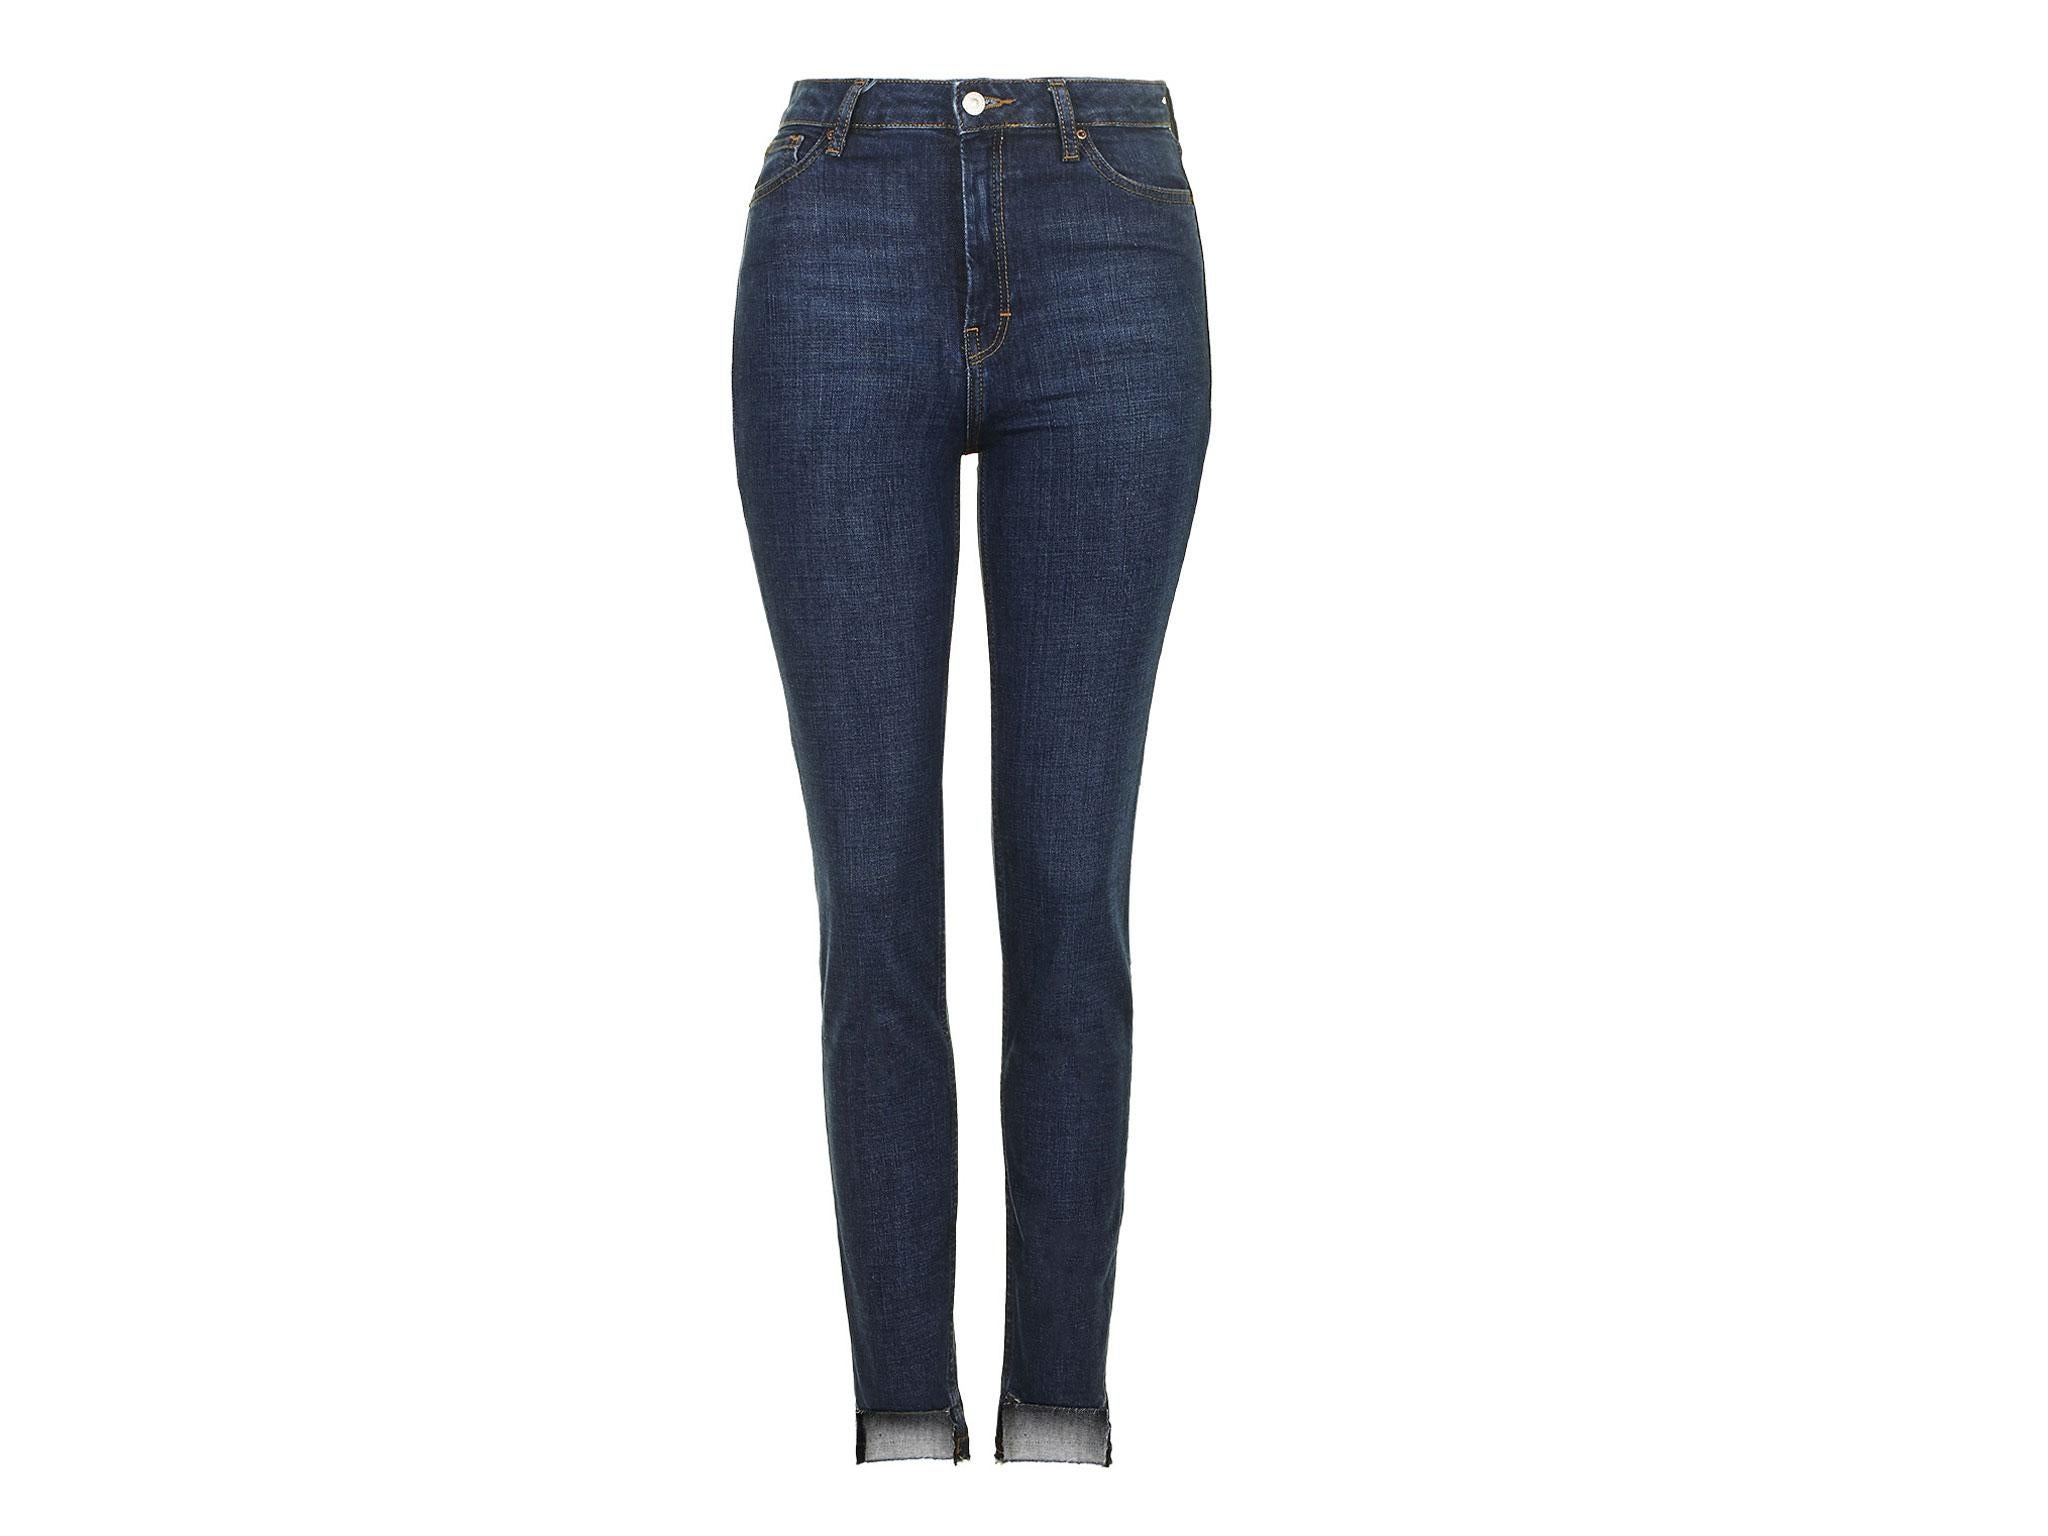 a2d7e6b182 A pair of Topshop jeans are bound to have graced your wardrobe at some  point or another  they re the high street go-to for on trend denim and with  so many ...